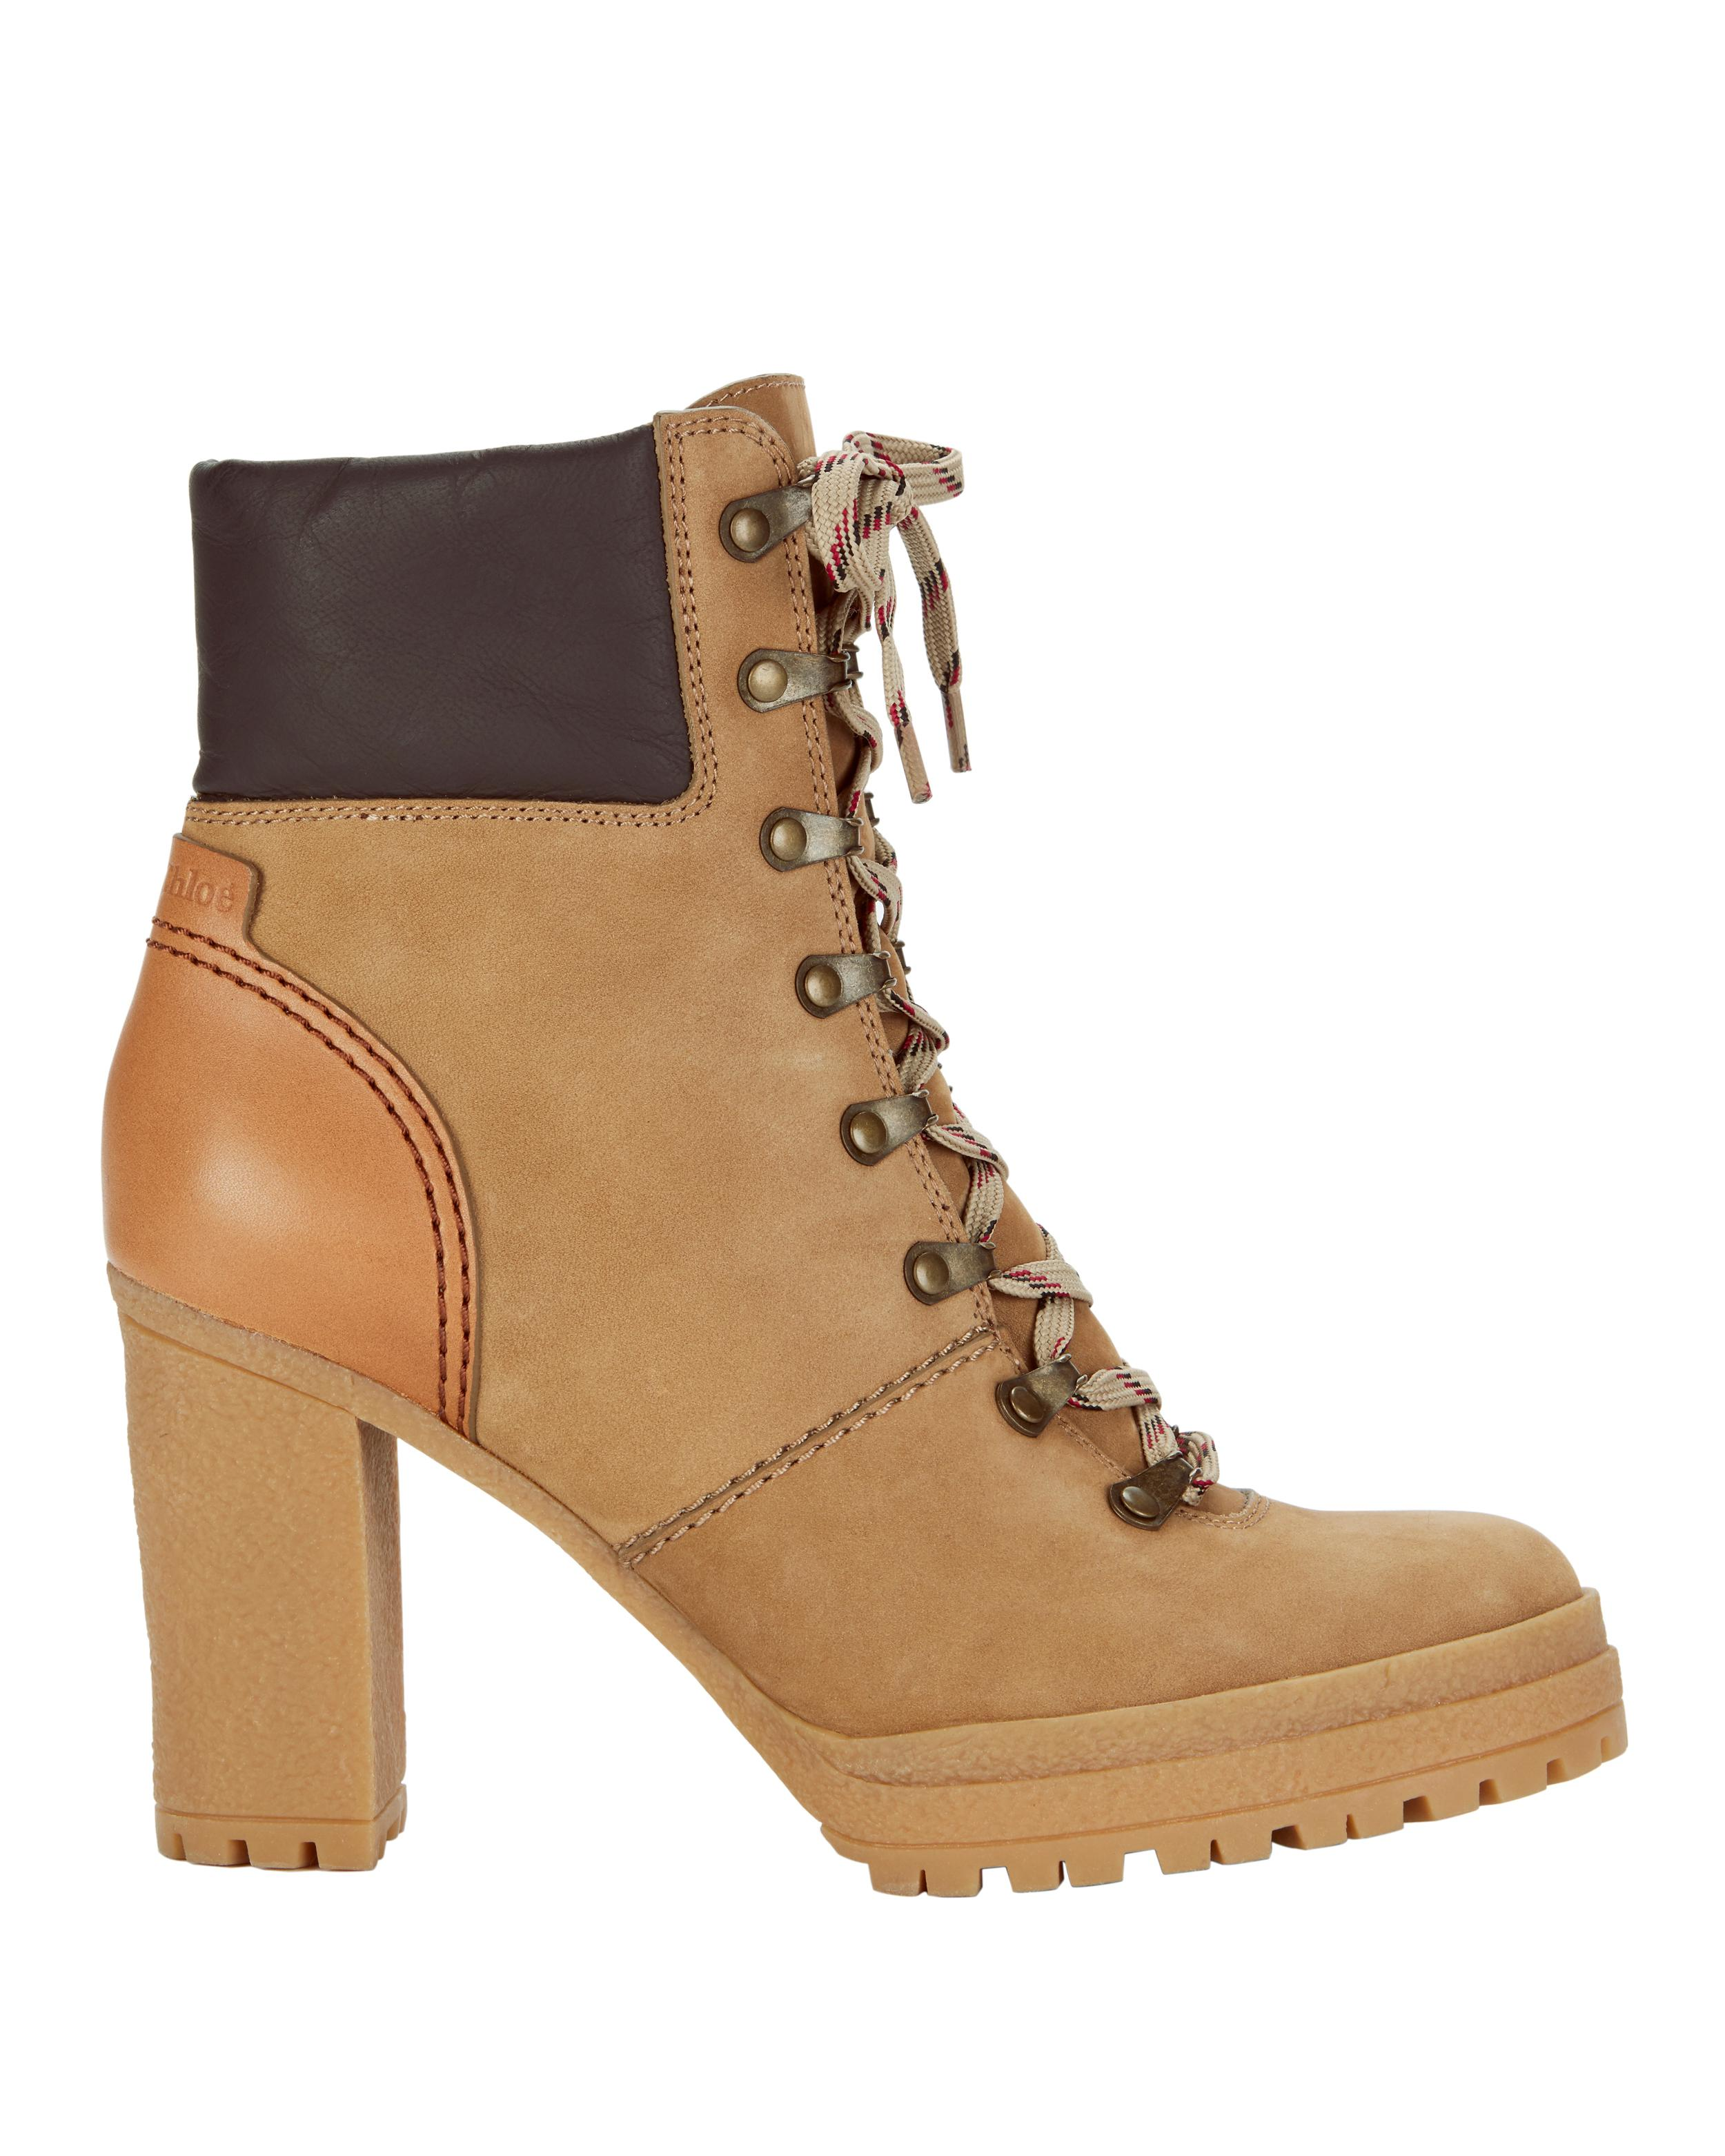 8a102e83ac01 Lyst - See By Chloé Claudia Lace-up Hiker Booties in Natural